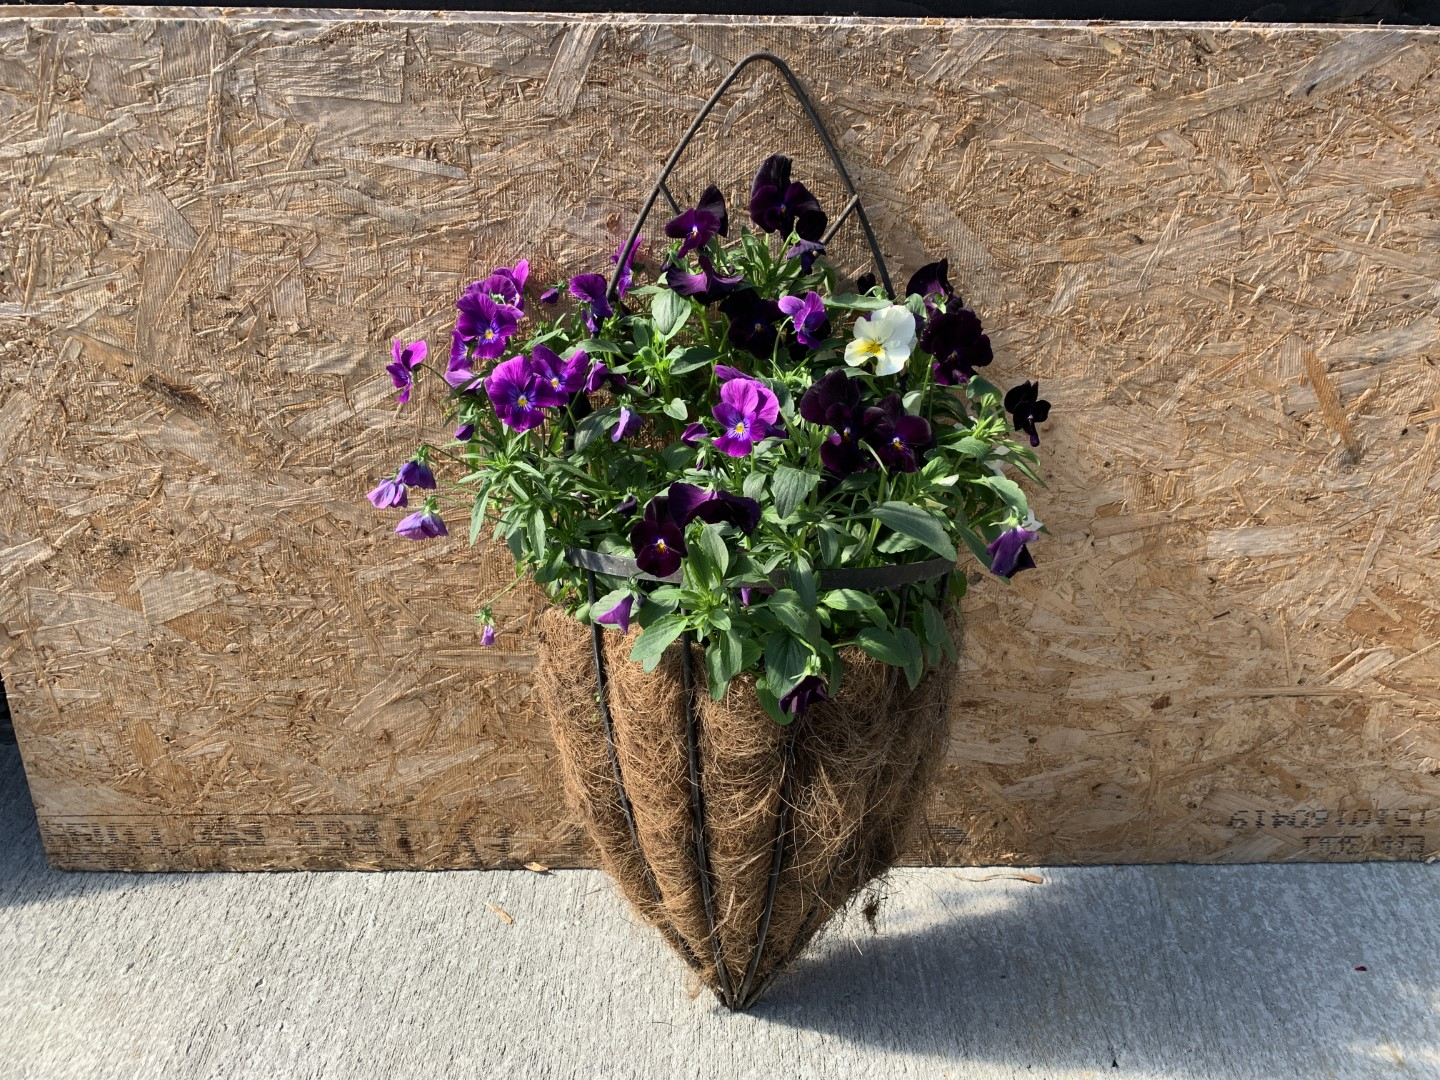 Half Cone Wall Mounted Planter - Filled